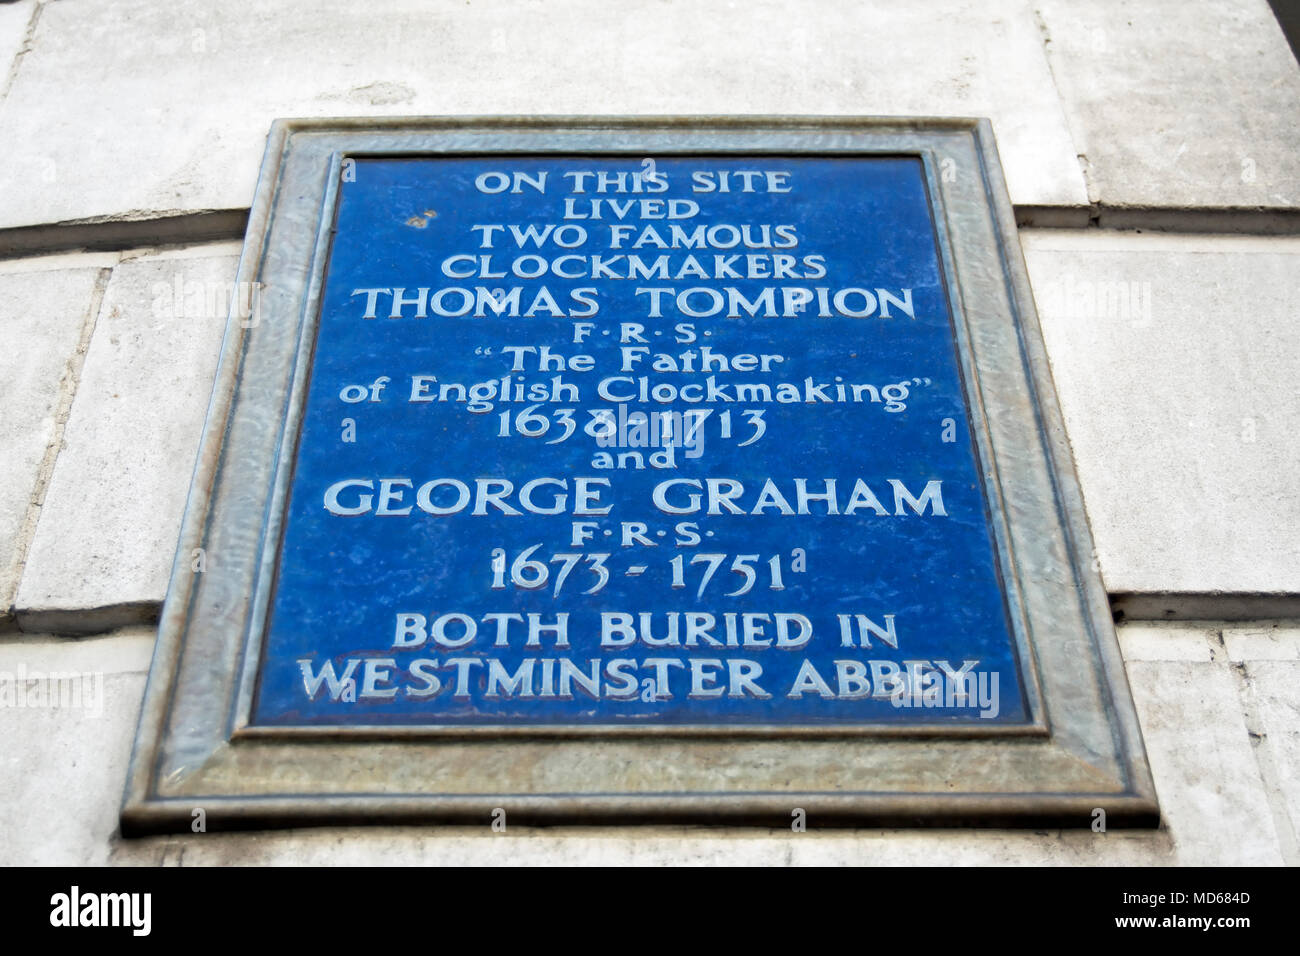 blue plaque marking the site of the homes of two prominent clockmakers, thomas tompion and george graham, fleet street, london, england - Stock Image